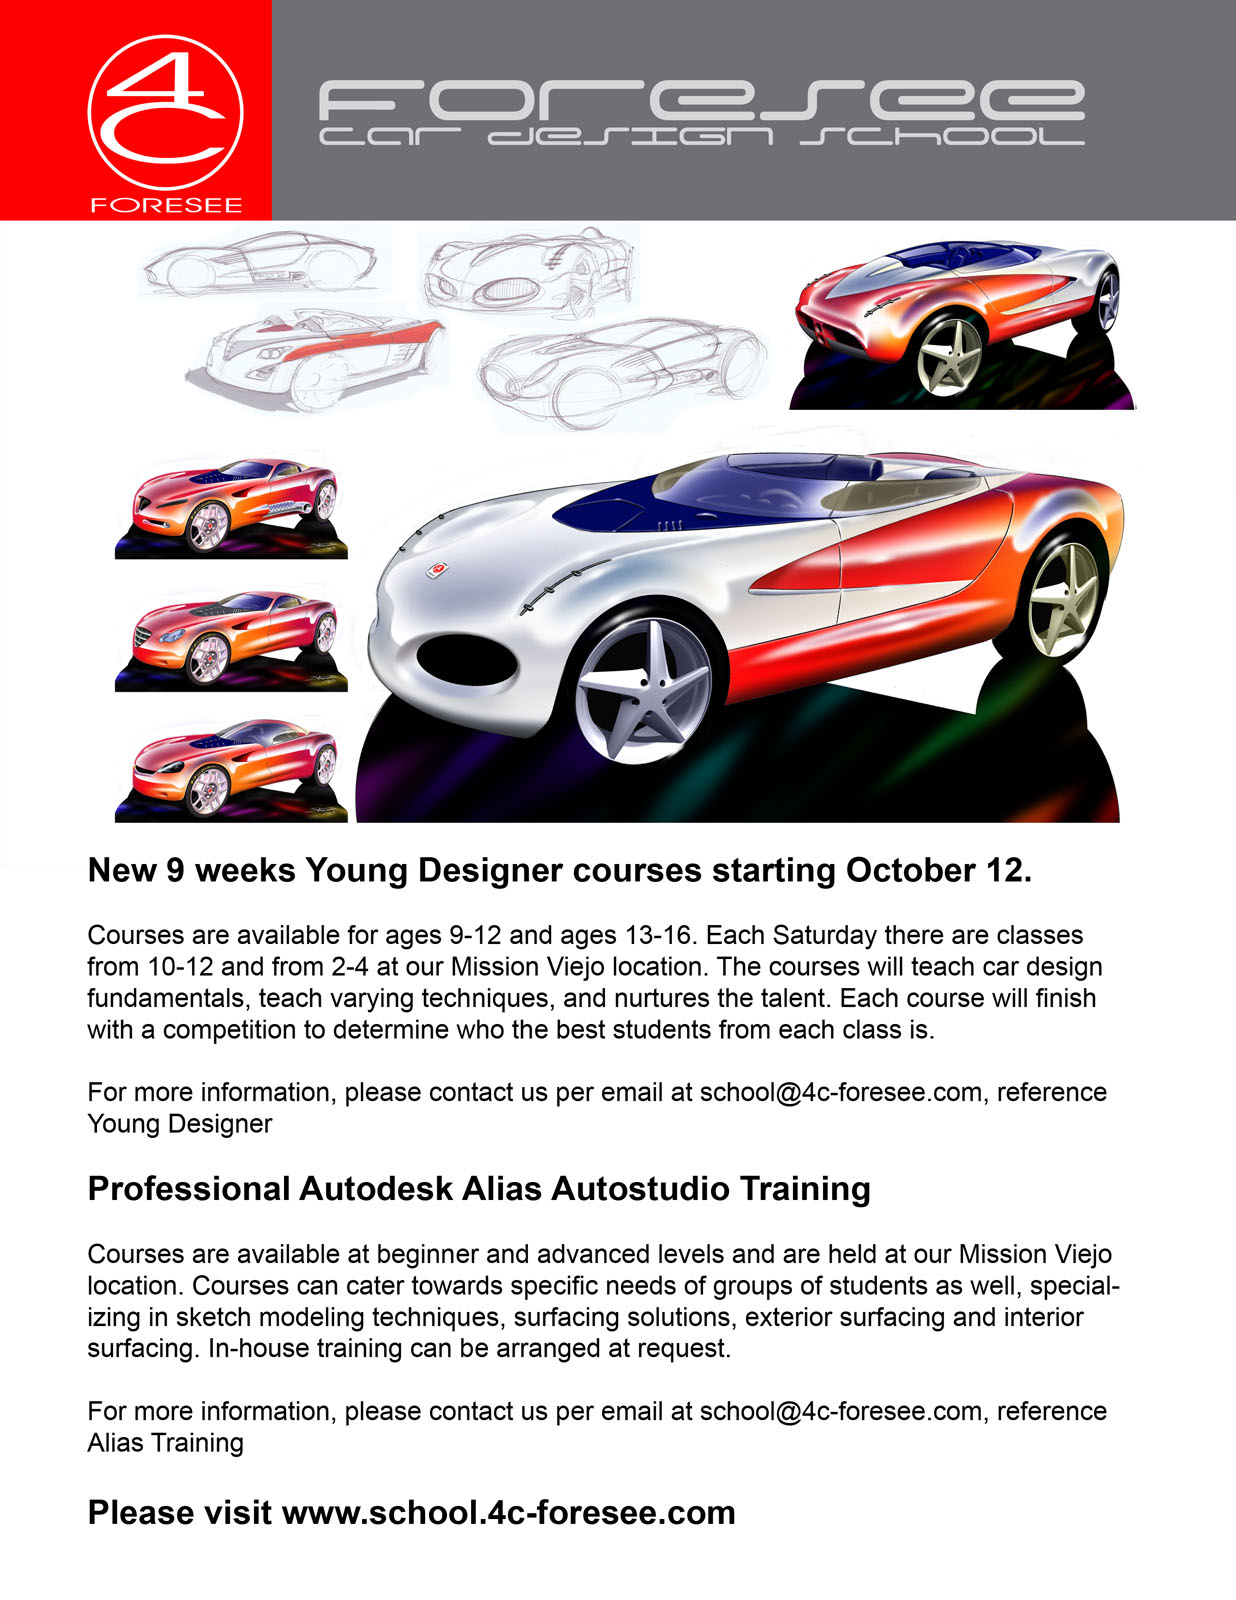 car design classes in mission viejo for kids aged 9 12 and 13 17